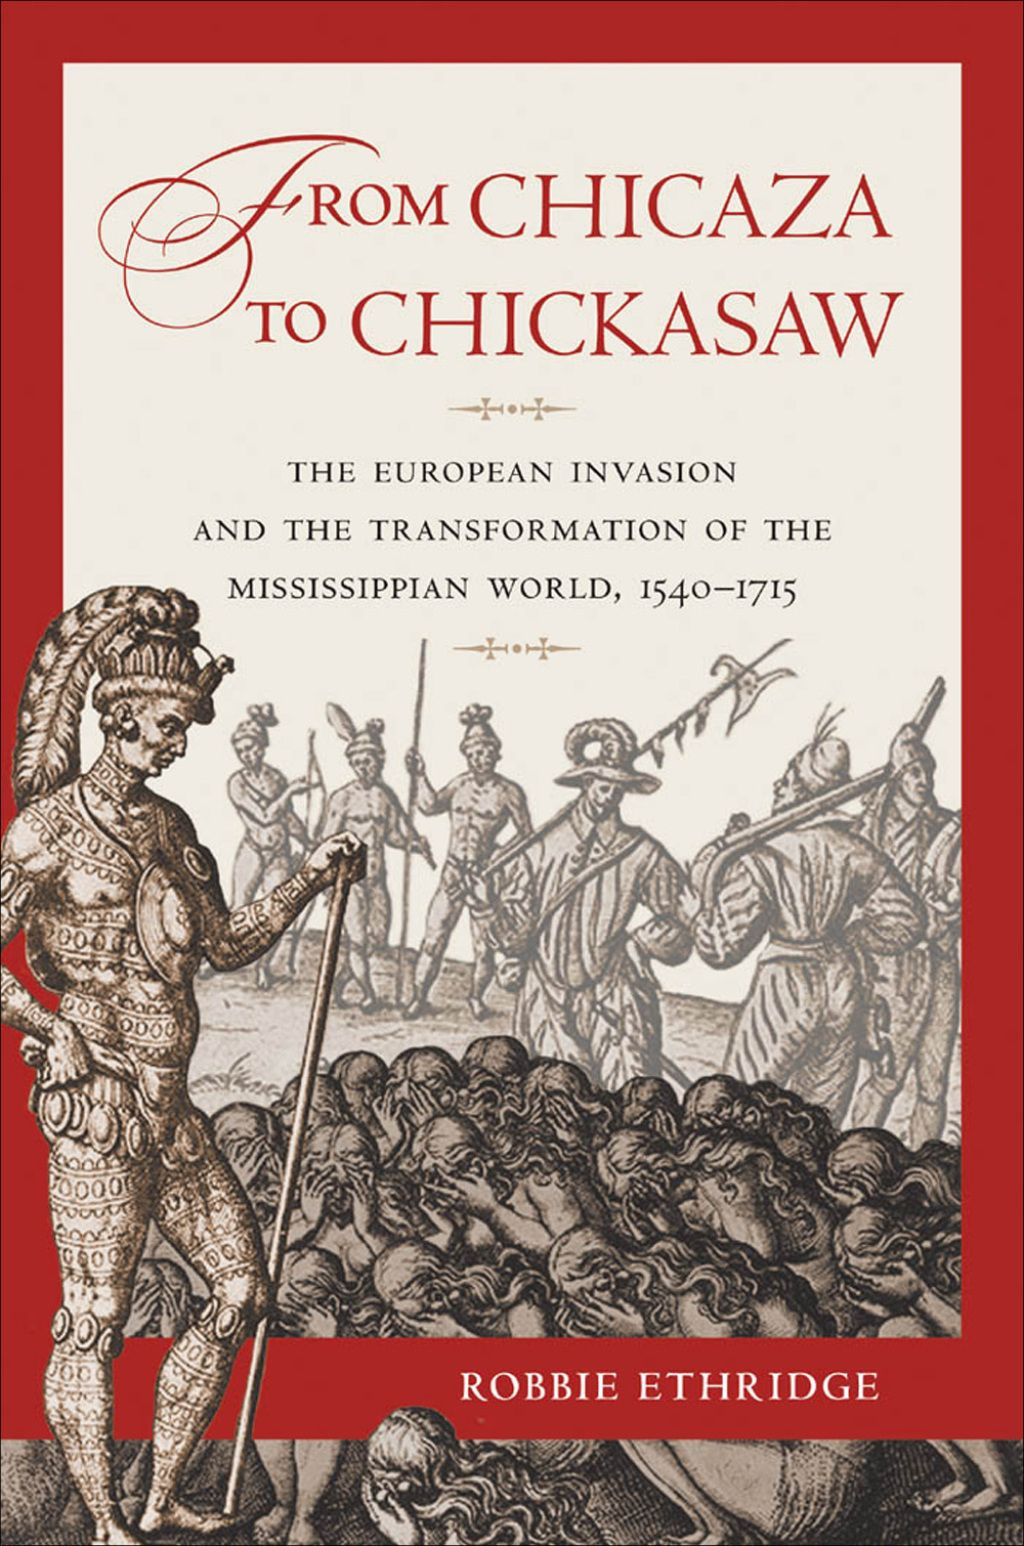 From Chicaza To Chickasaw Ebook